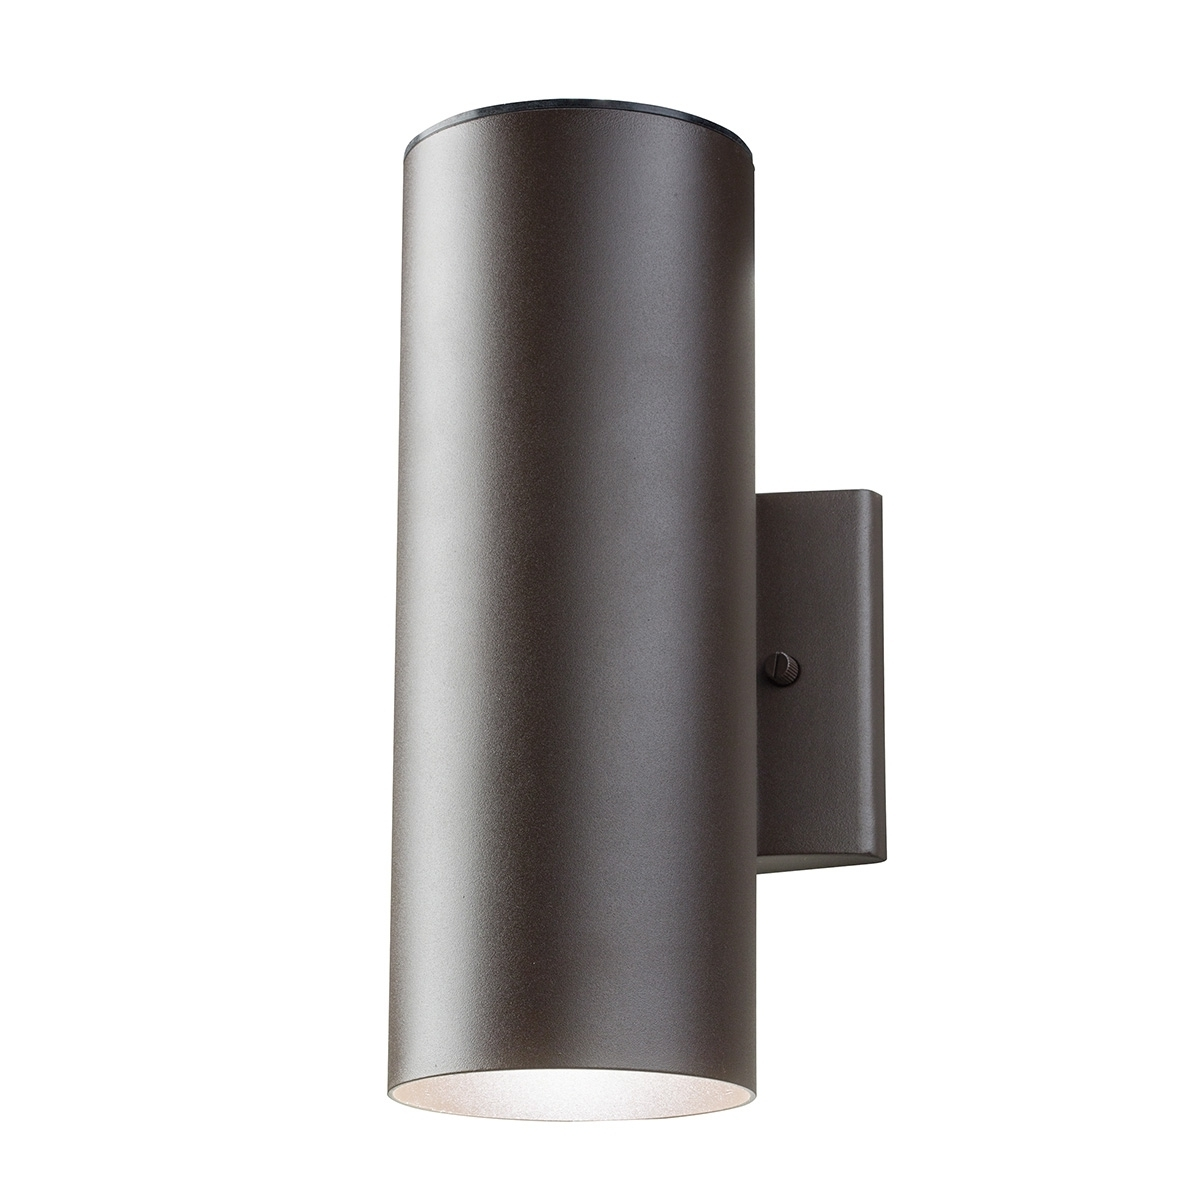 Most Recent 12 Volt Led Outdoor Wall Lights • Outdoor Lighting Within 12 Volt Outdoor Wall Lighting (View 15 of 20)